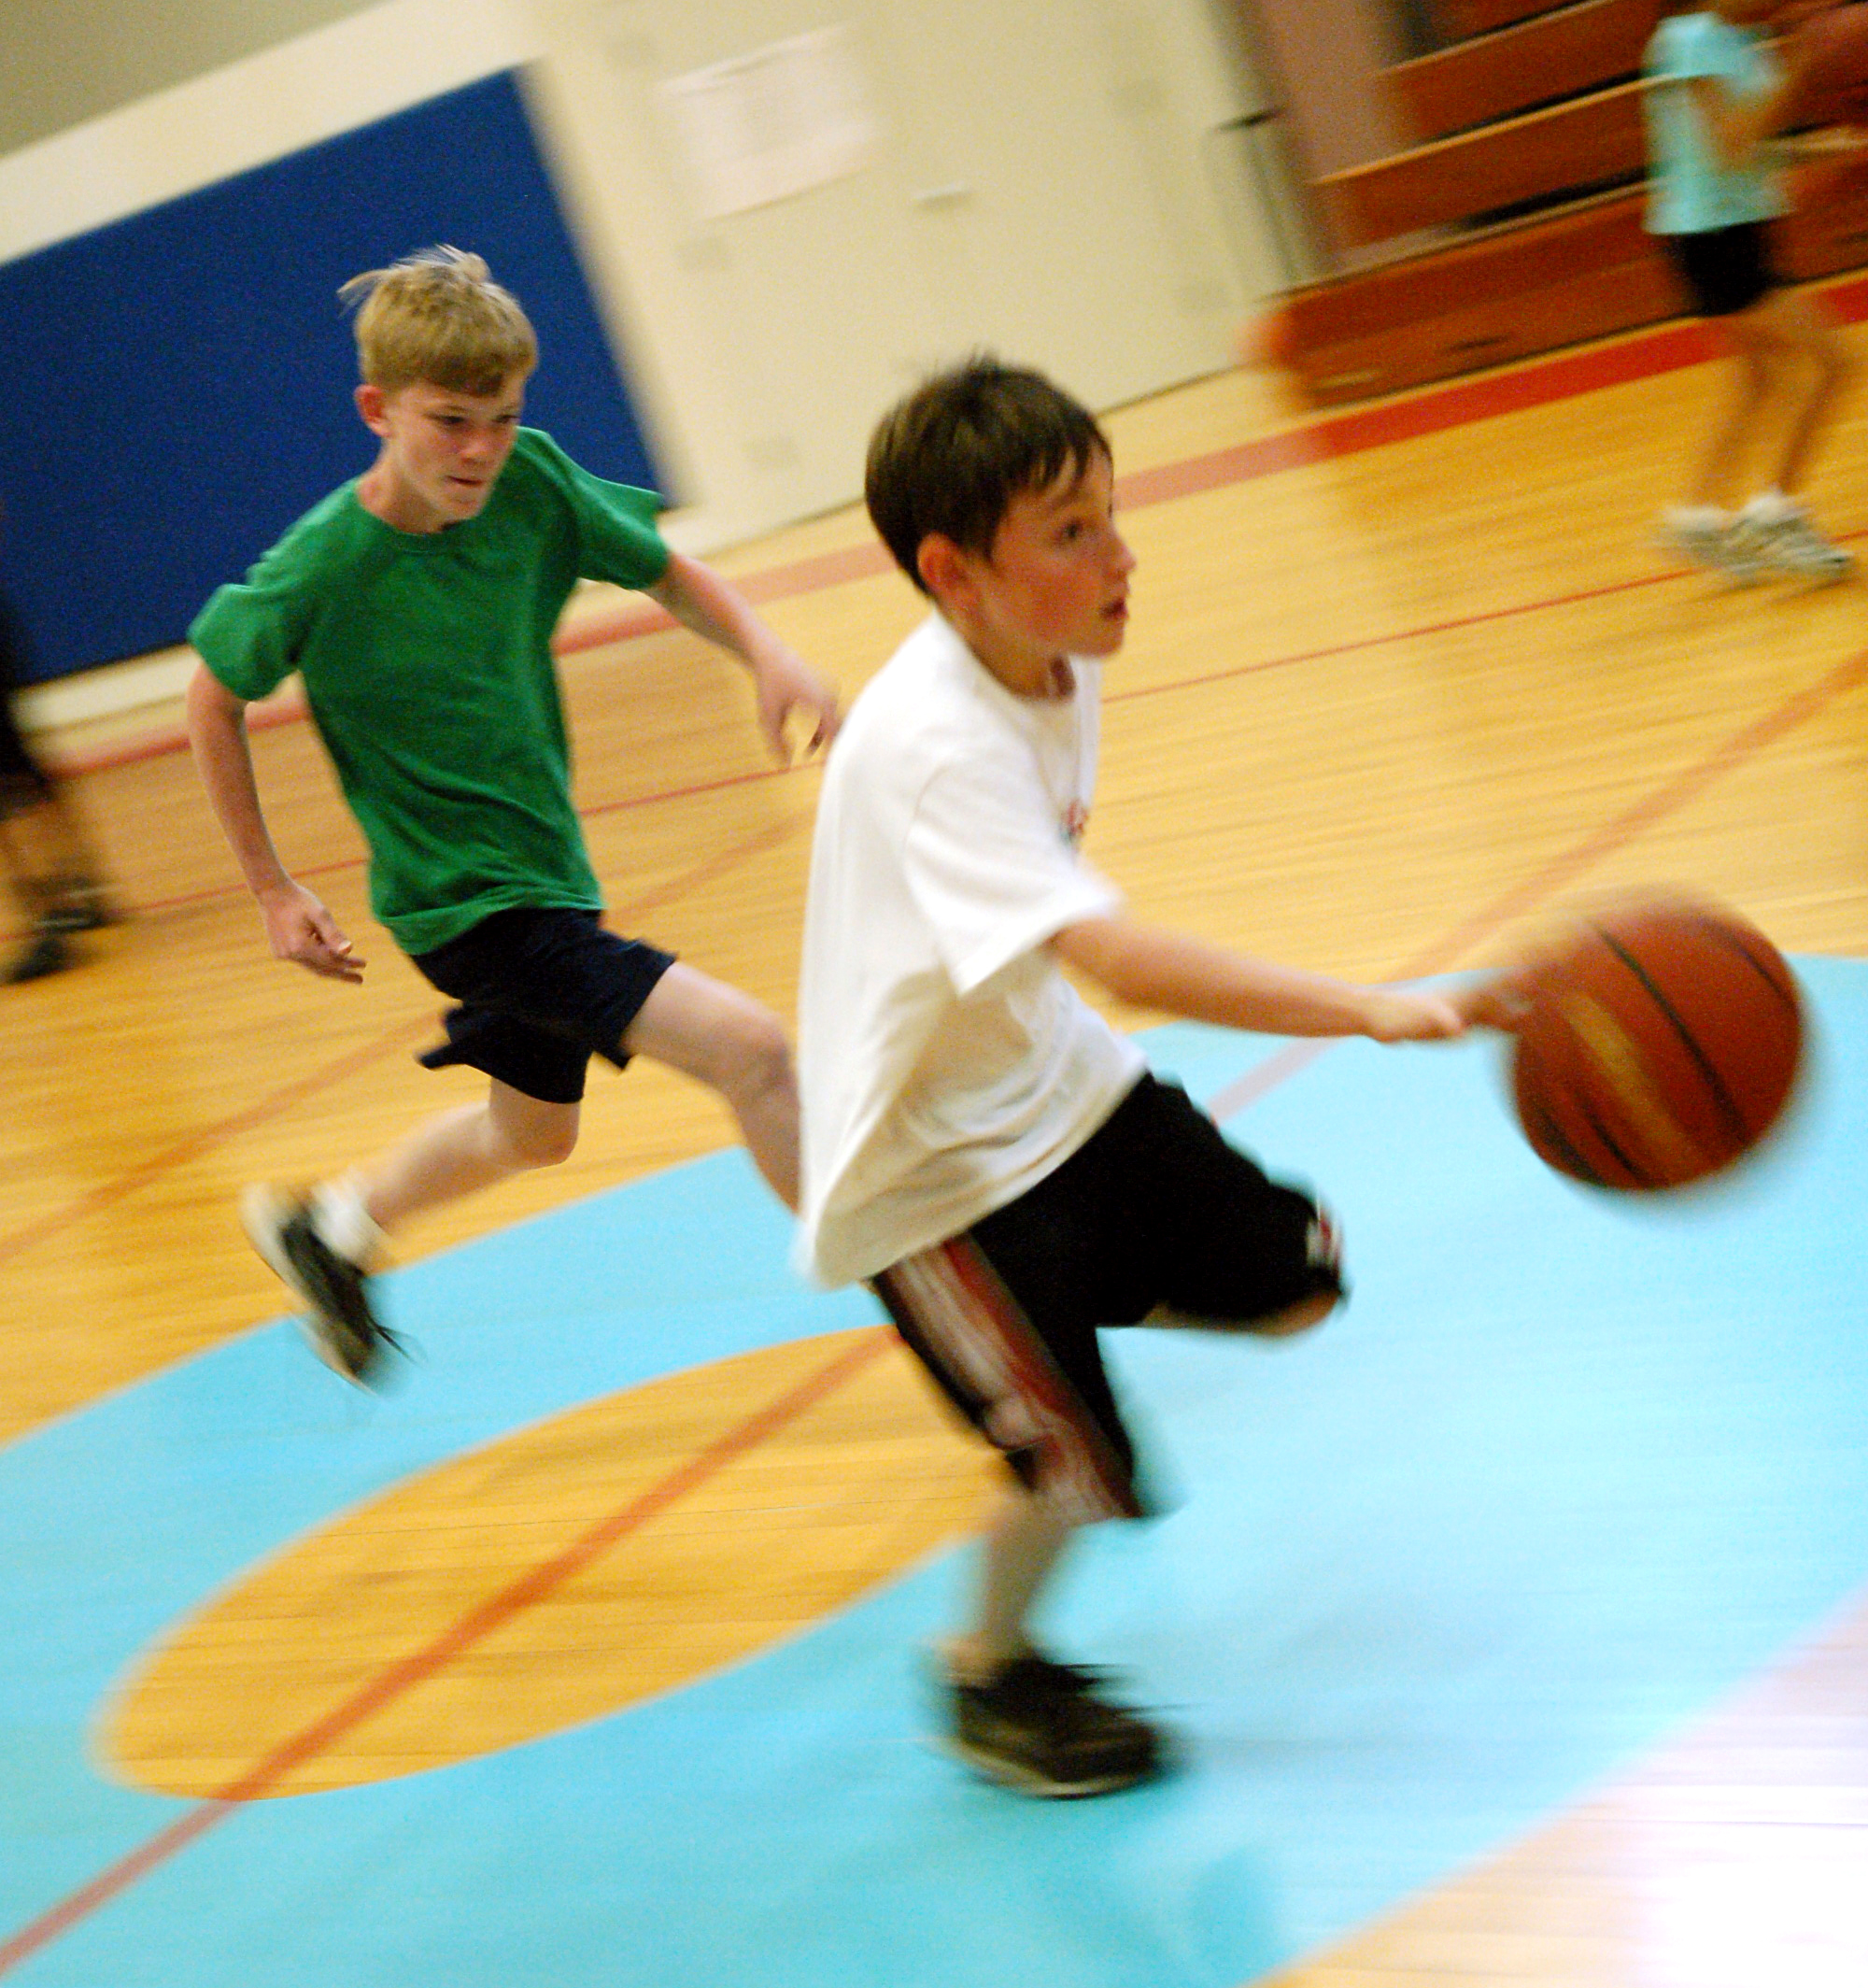 Basketball Camps Clinics Denver Youth Sports: Laughlin Youth Hoop It Up At Basketball Camp > Laughlin